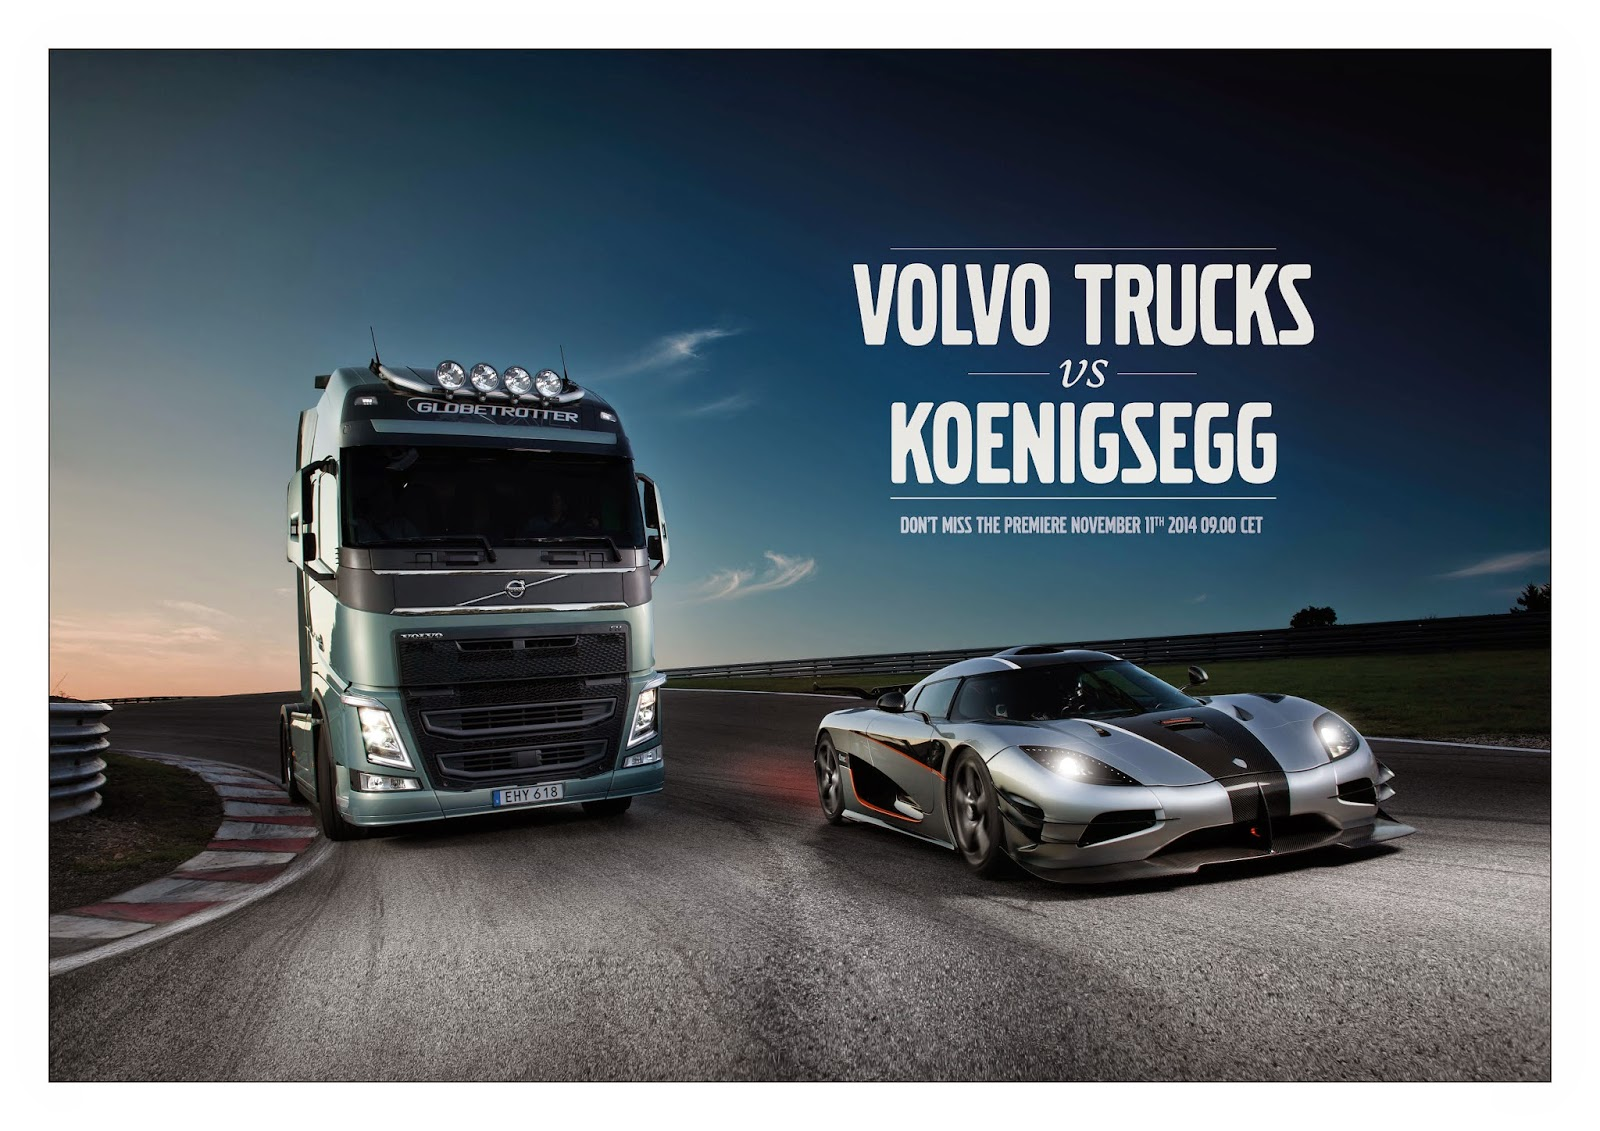 Teaser: Volvo Trucks Challenges One Of The Worldu0027s Fastest Sports Cars   A Koenigsegg  One